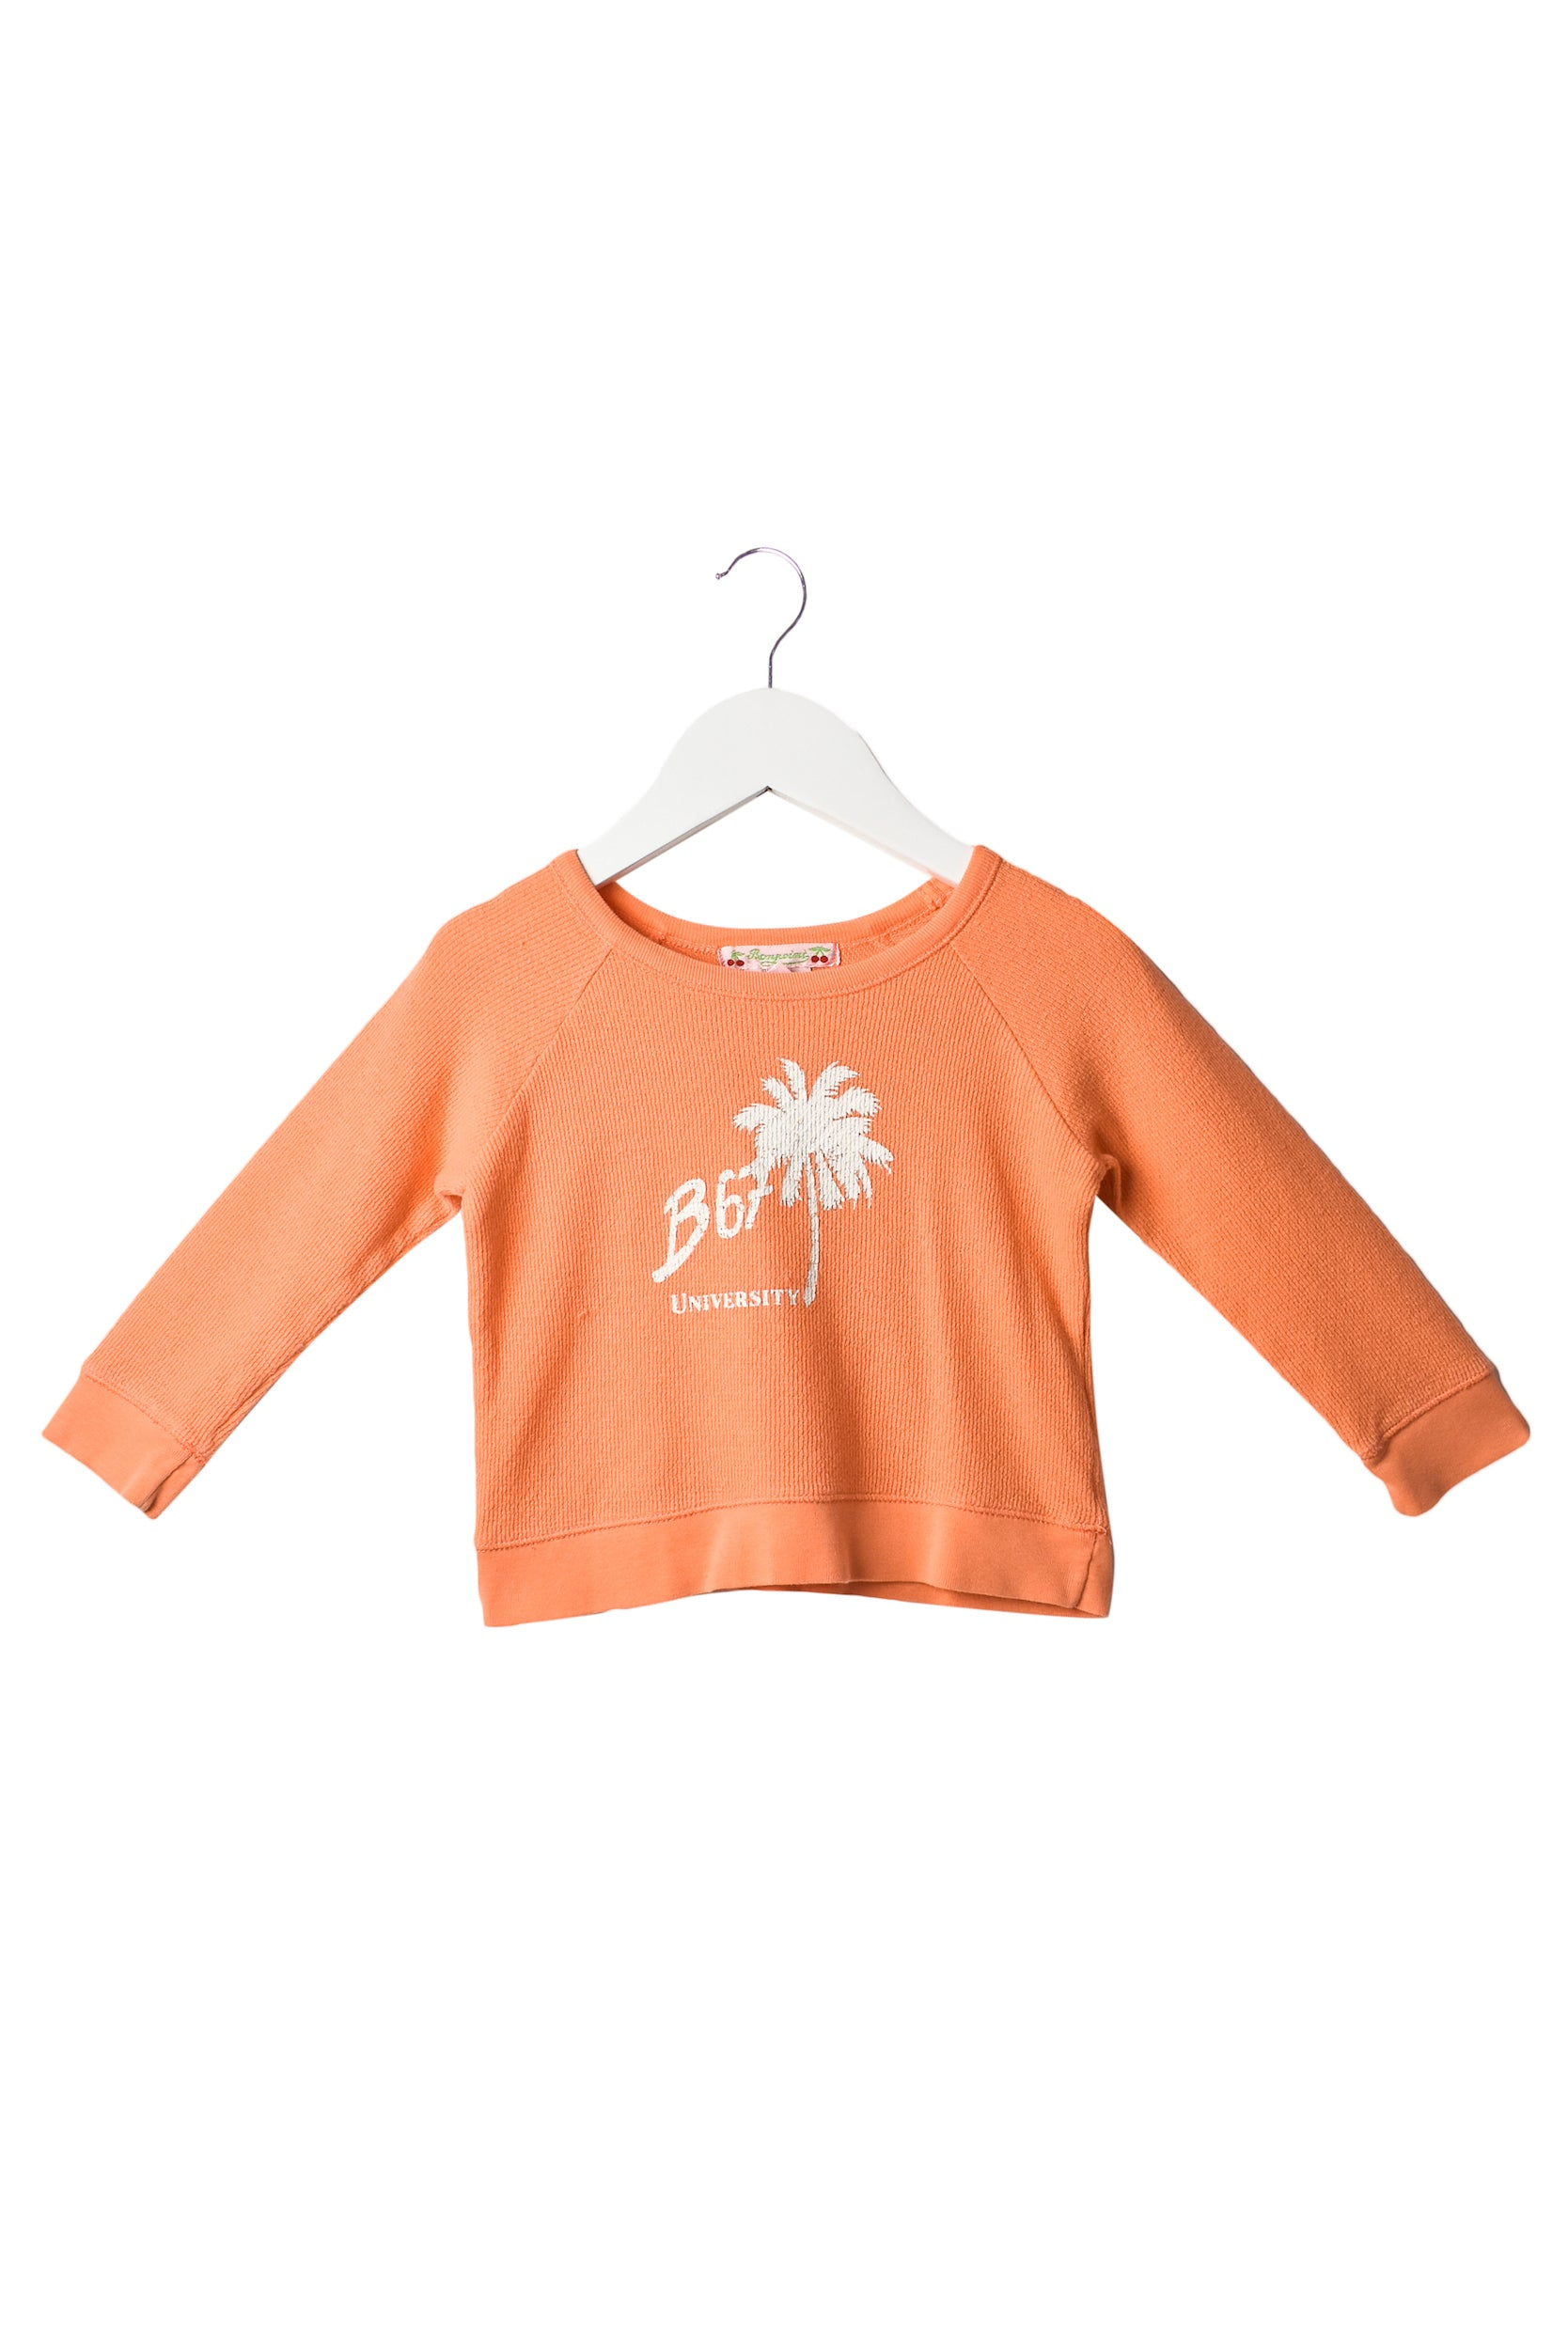 Bonpoint at Retykle | Online Shopping Discount Baby & Kids Clothes Hong Kong